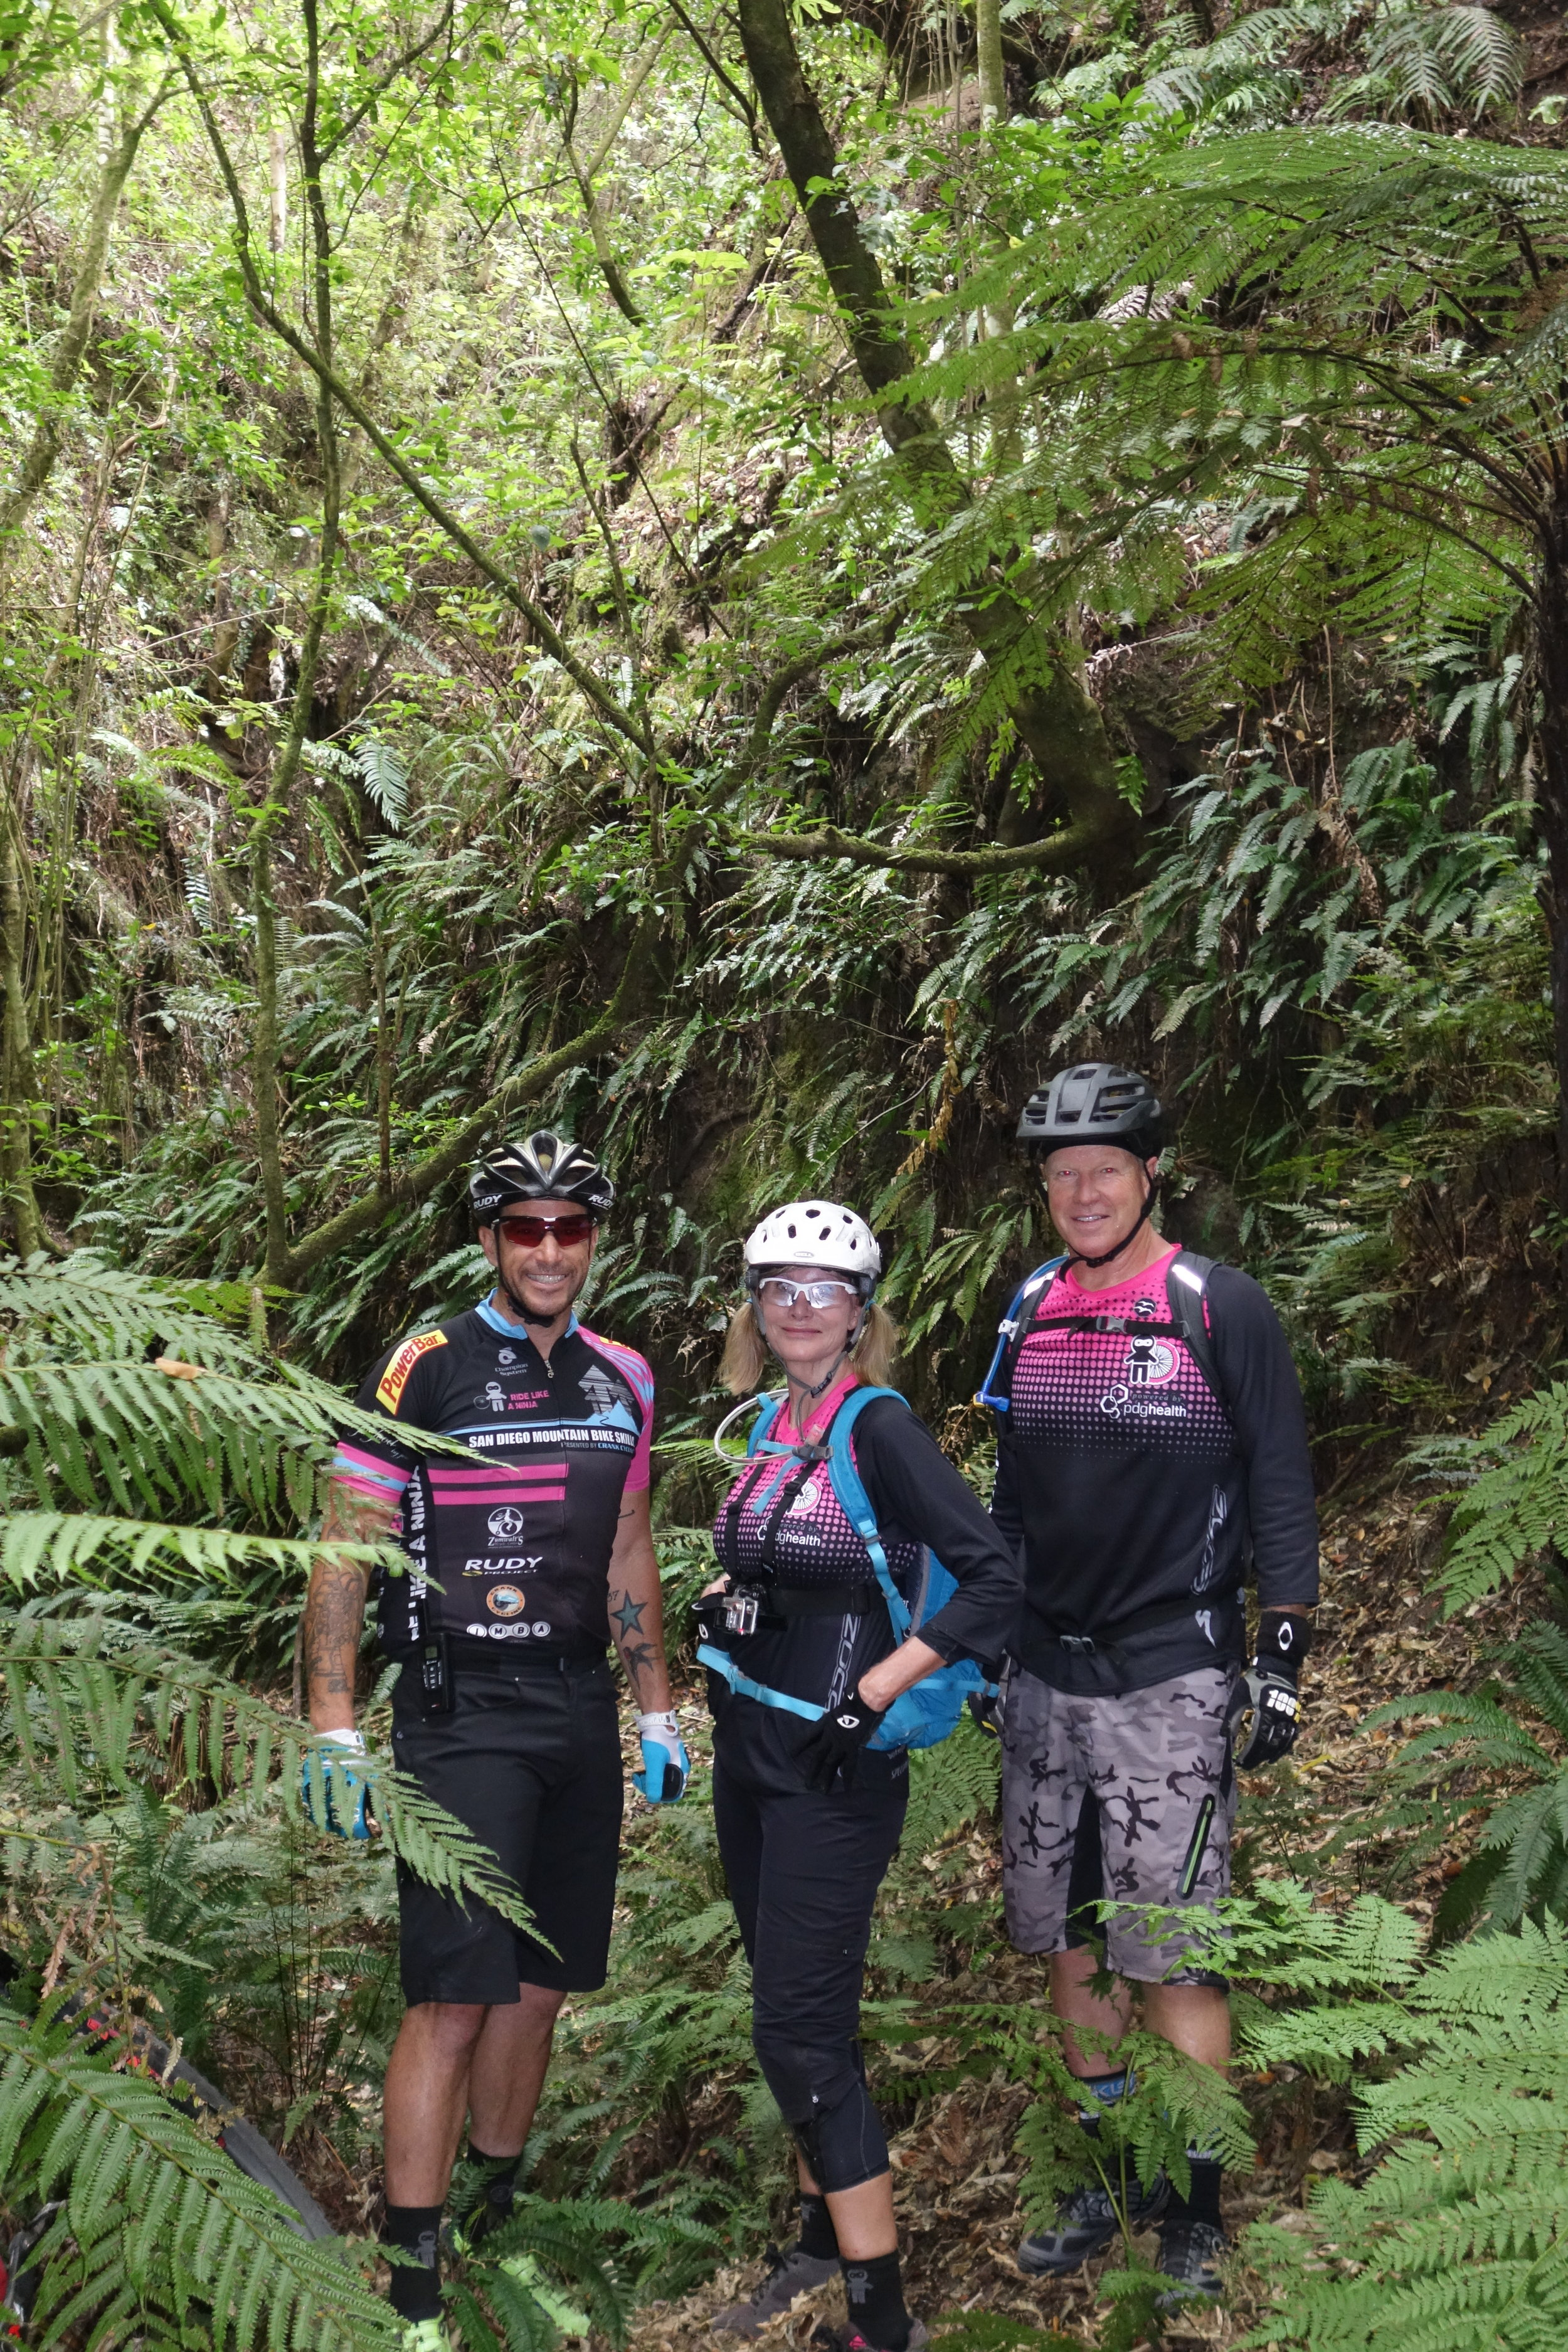 Welcome to the jungle. Richard found a dark deep ravine off the side of the trail so Patty and Jim rode back to check it out.